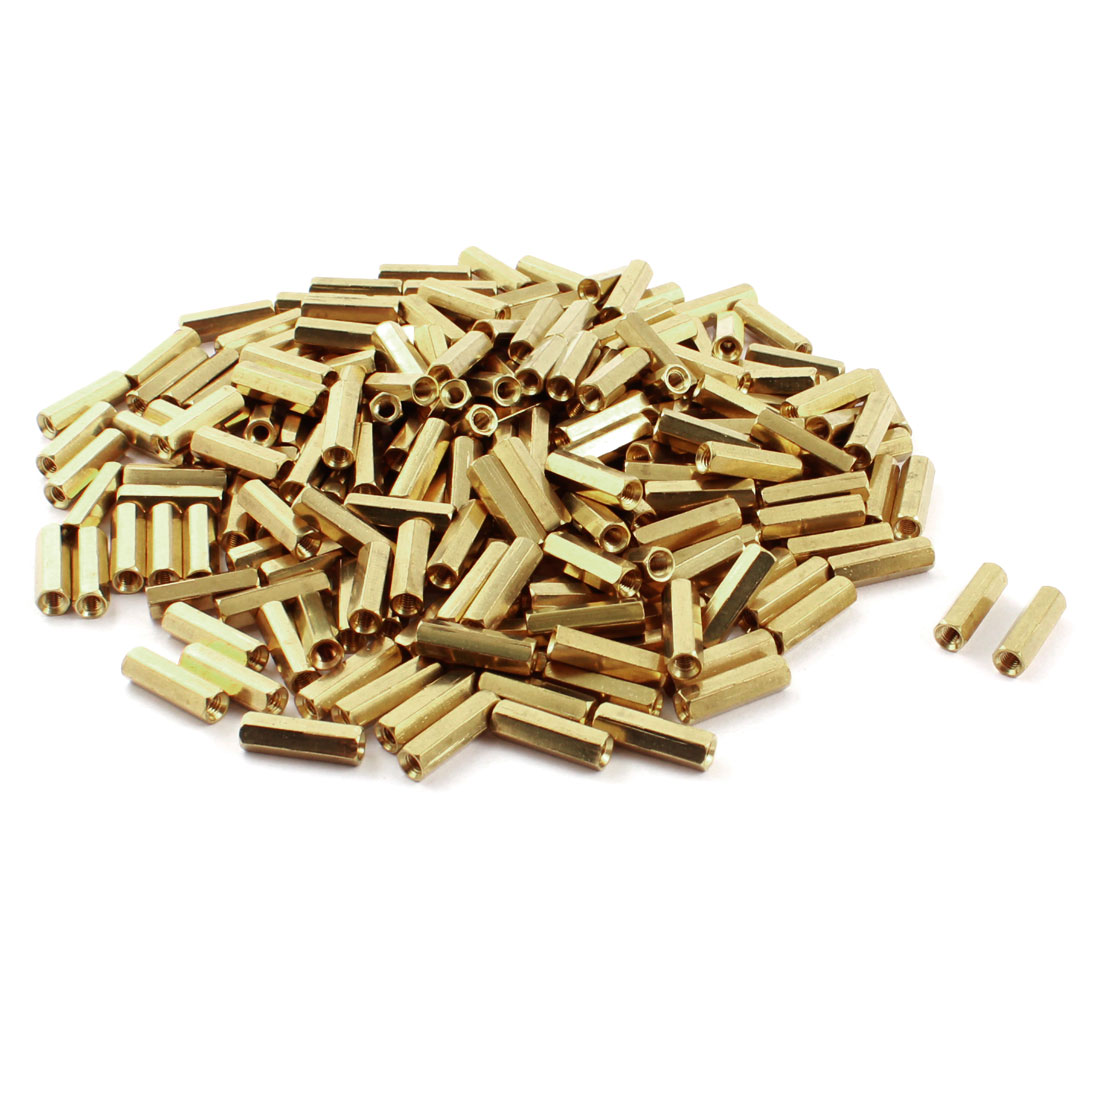 200 Pcs M3 x 16mm Female Thread Dual Ends Brass Pillar PCB Standoff Hexagonal Nut Spacer